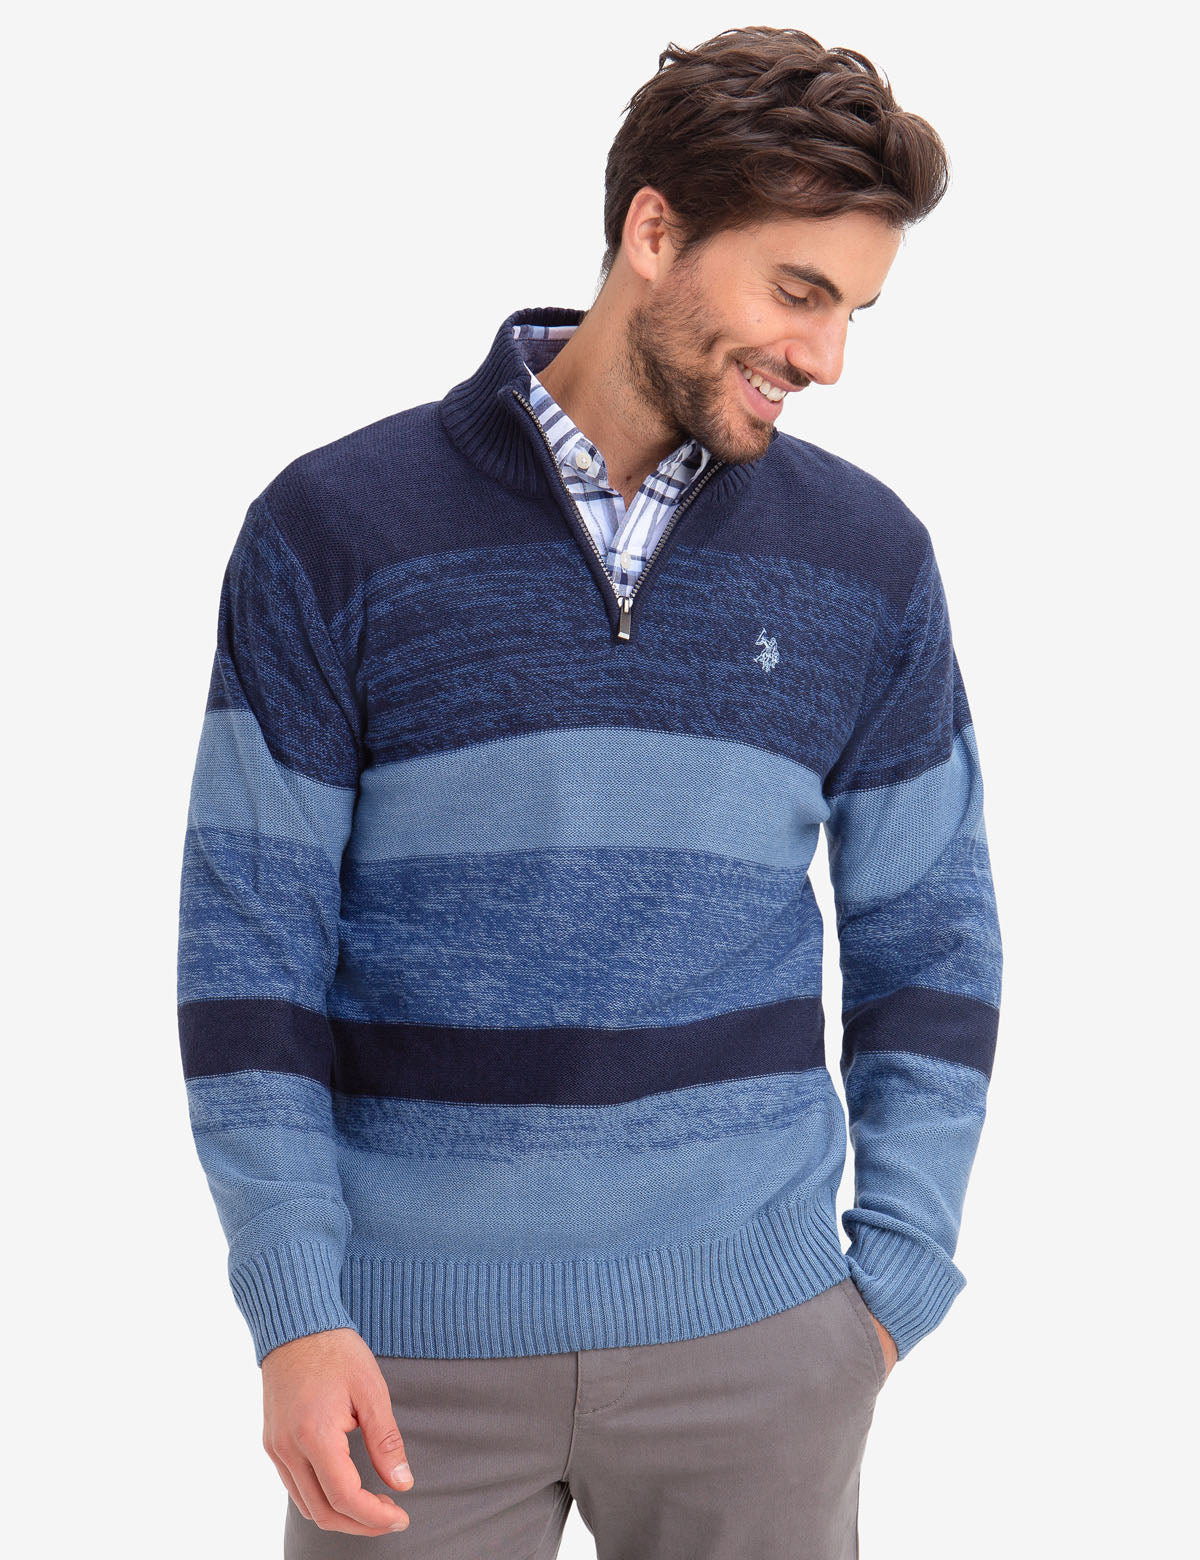 QUARTER ZIP MARLED SWEATER - U.S. Polo Assn.